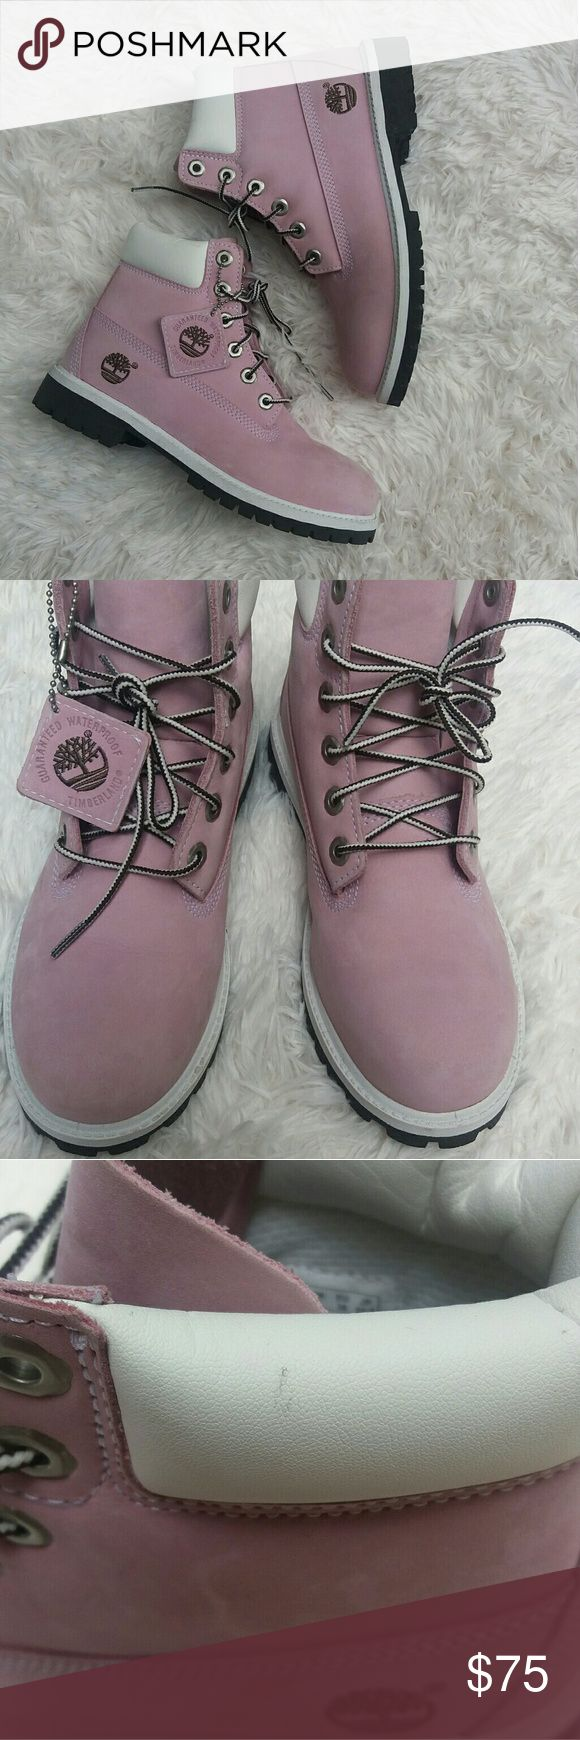 Pink Timberland Boots Pink Tims in girls size 5.5 but runs HUGE and fits womens 7.5-8. Few light scuff marks on the collar and small crease on front of the right boot (as shown in listing) but is otherwise in like new condition. Timberland Shoes Winter & Rain Boots